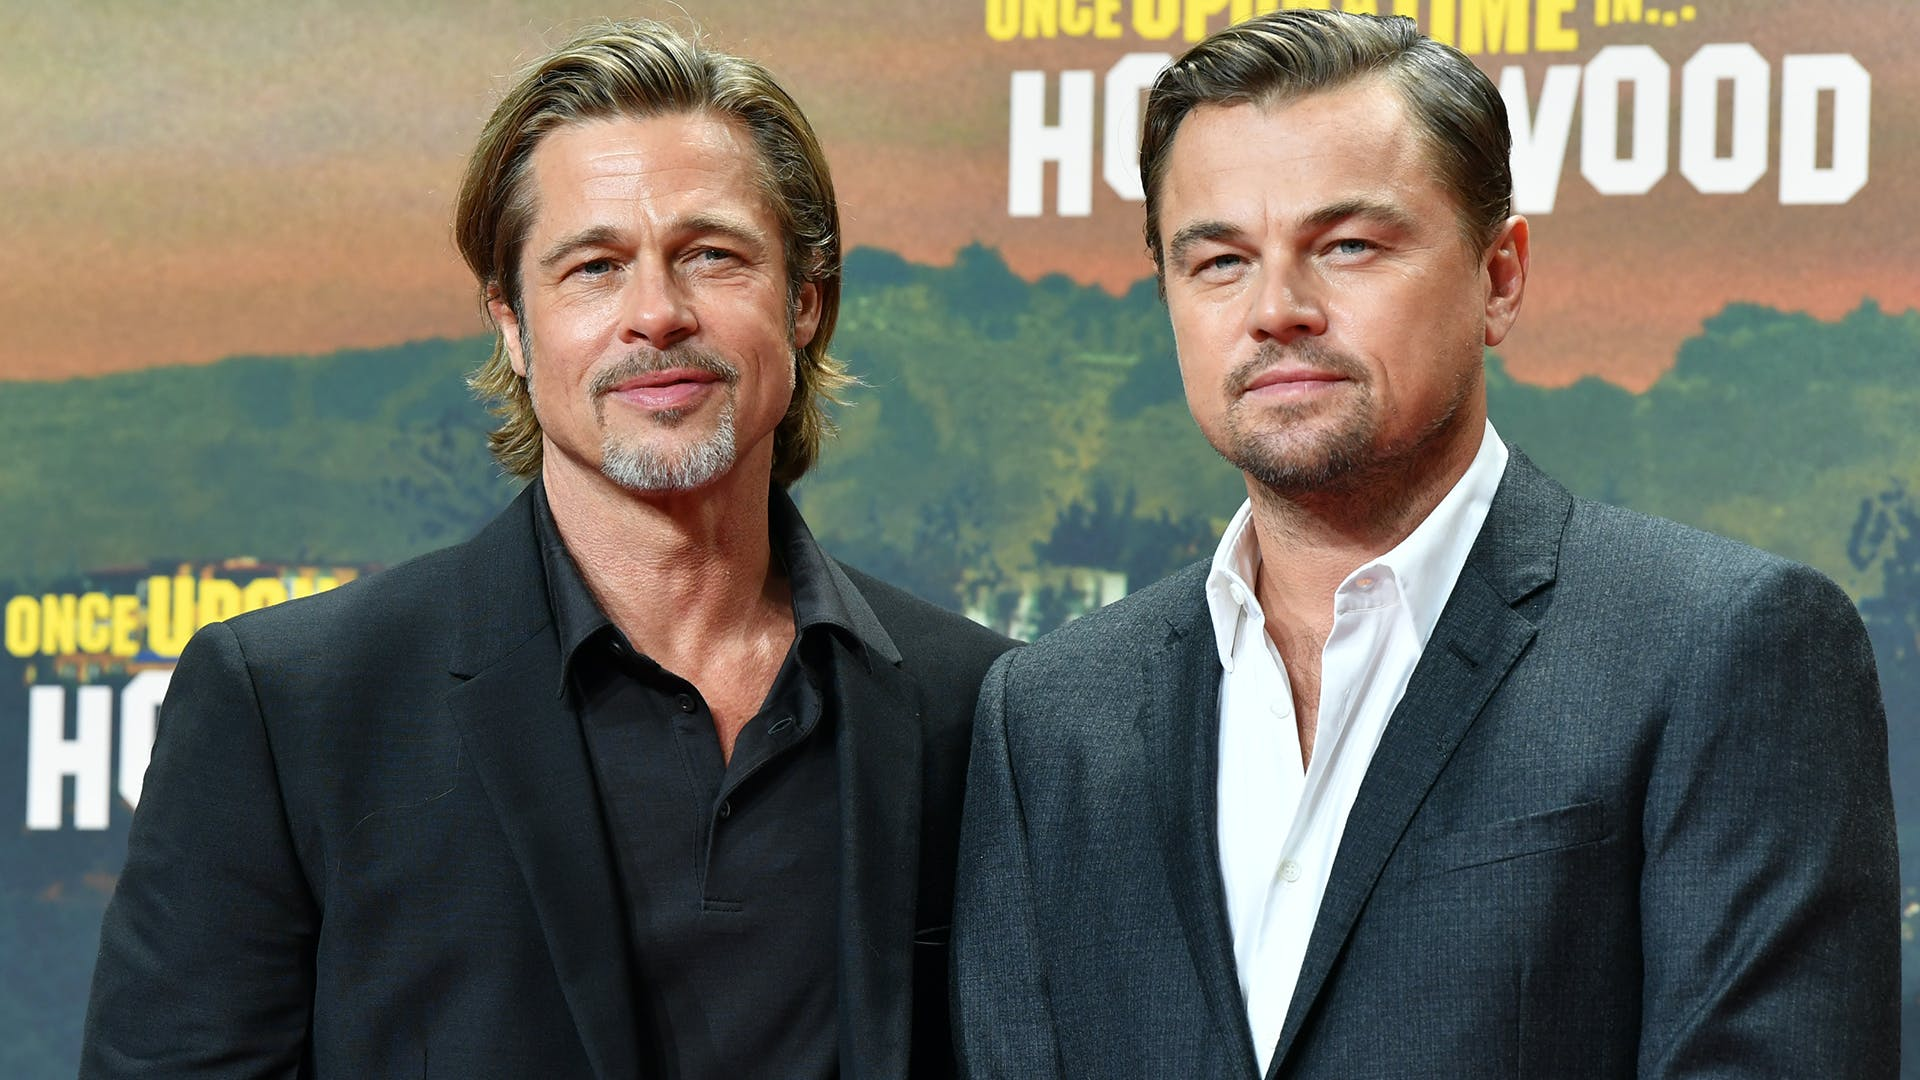 Hoeveel Oscarnominaties krijgt Once Upon A Time In Hollywood (Tarantino)?